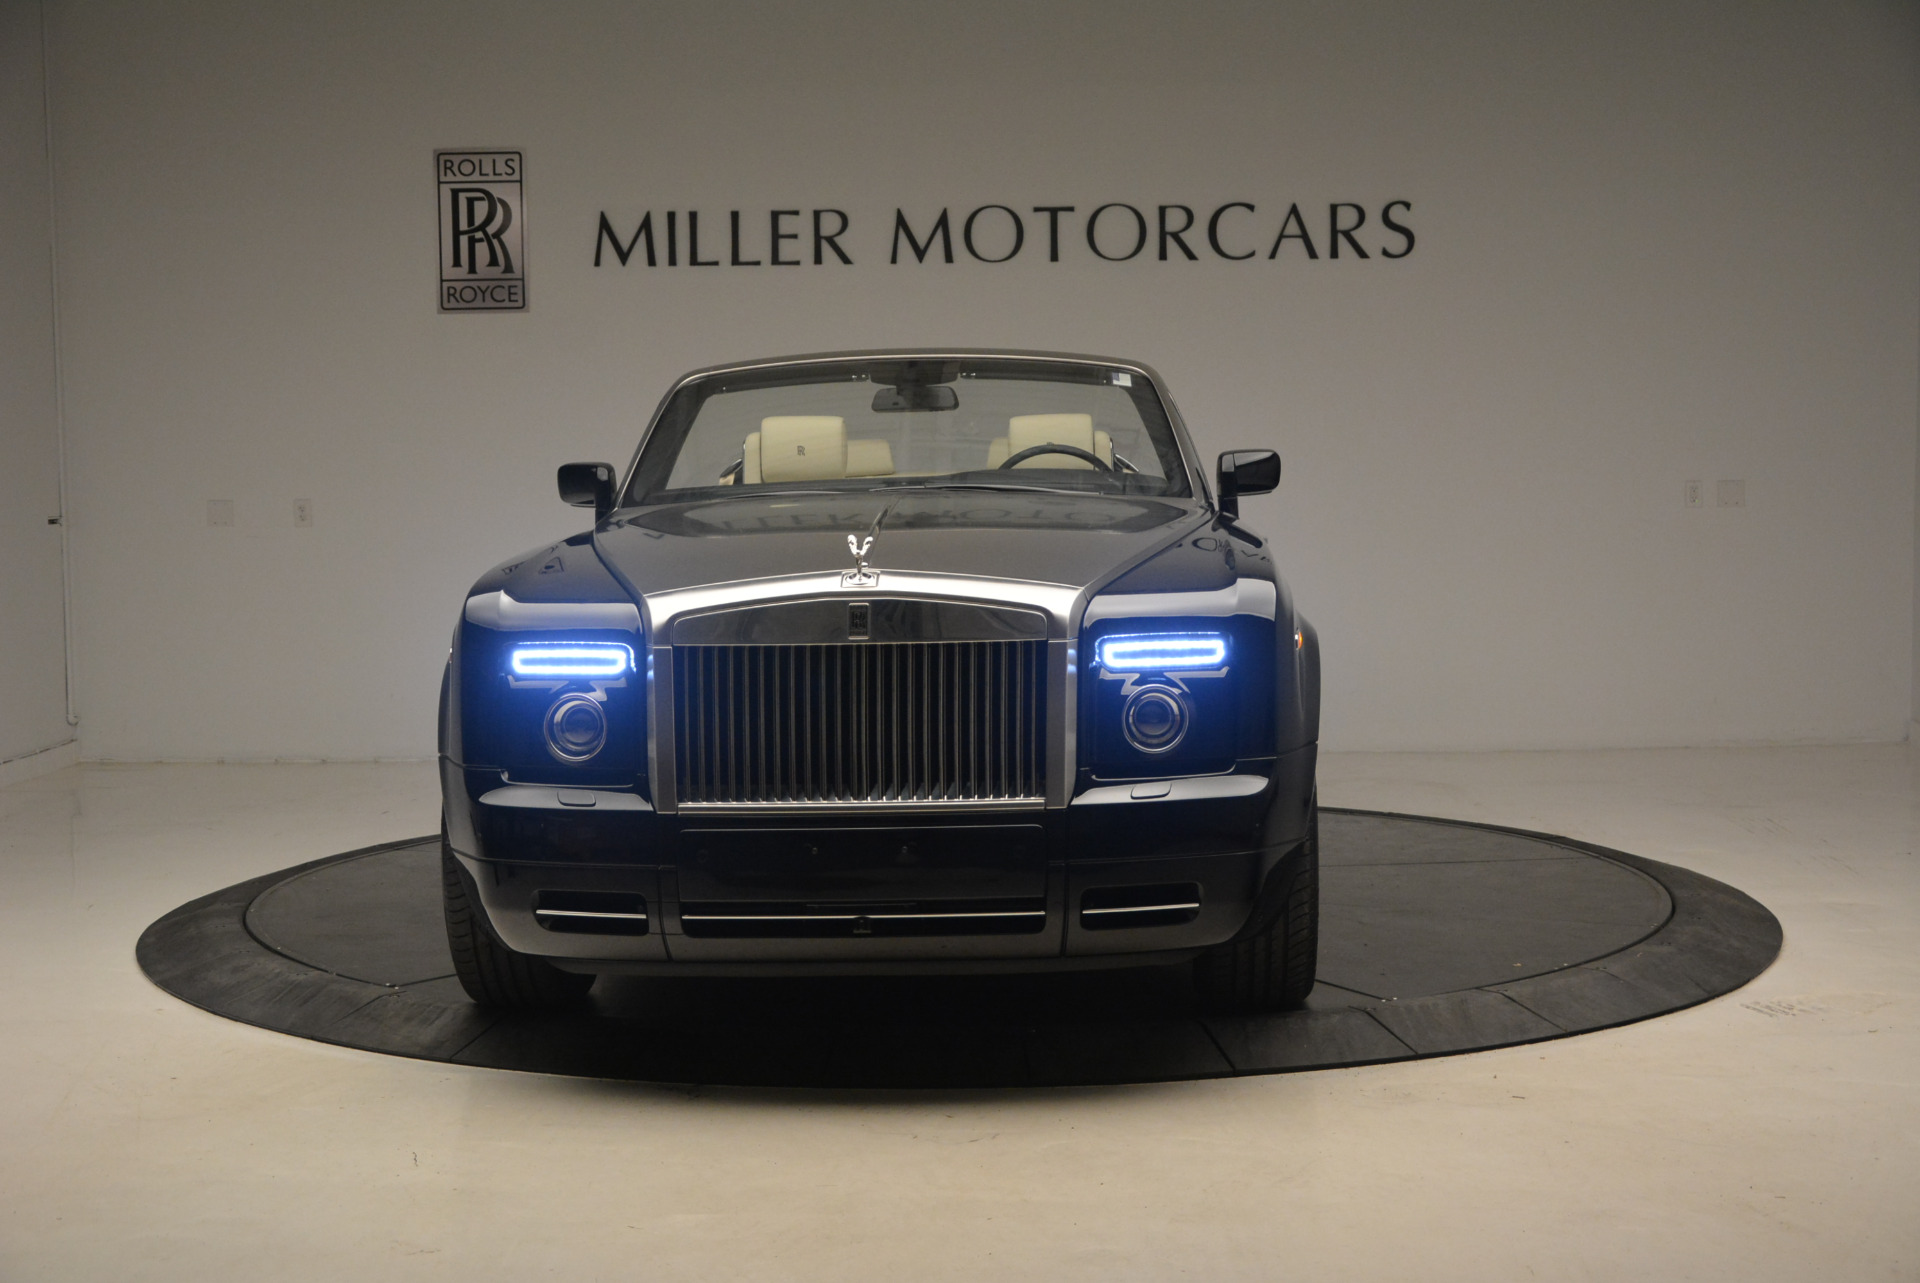 Used 2009 Rolls-Royce Phantom Drophead Coupe  For Sale In Westport, CT 1792_p13